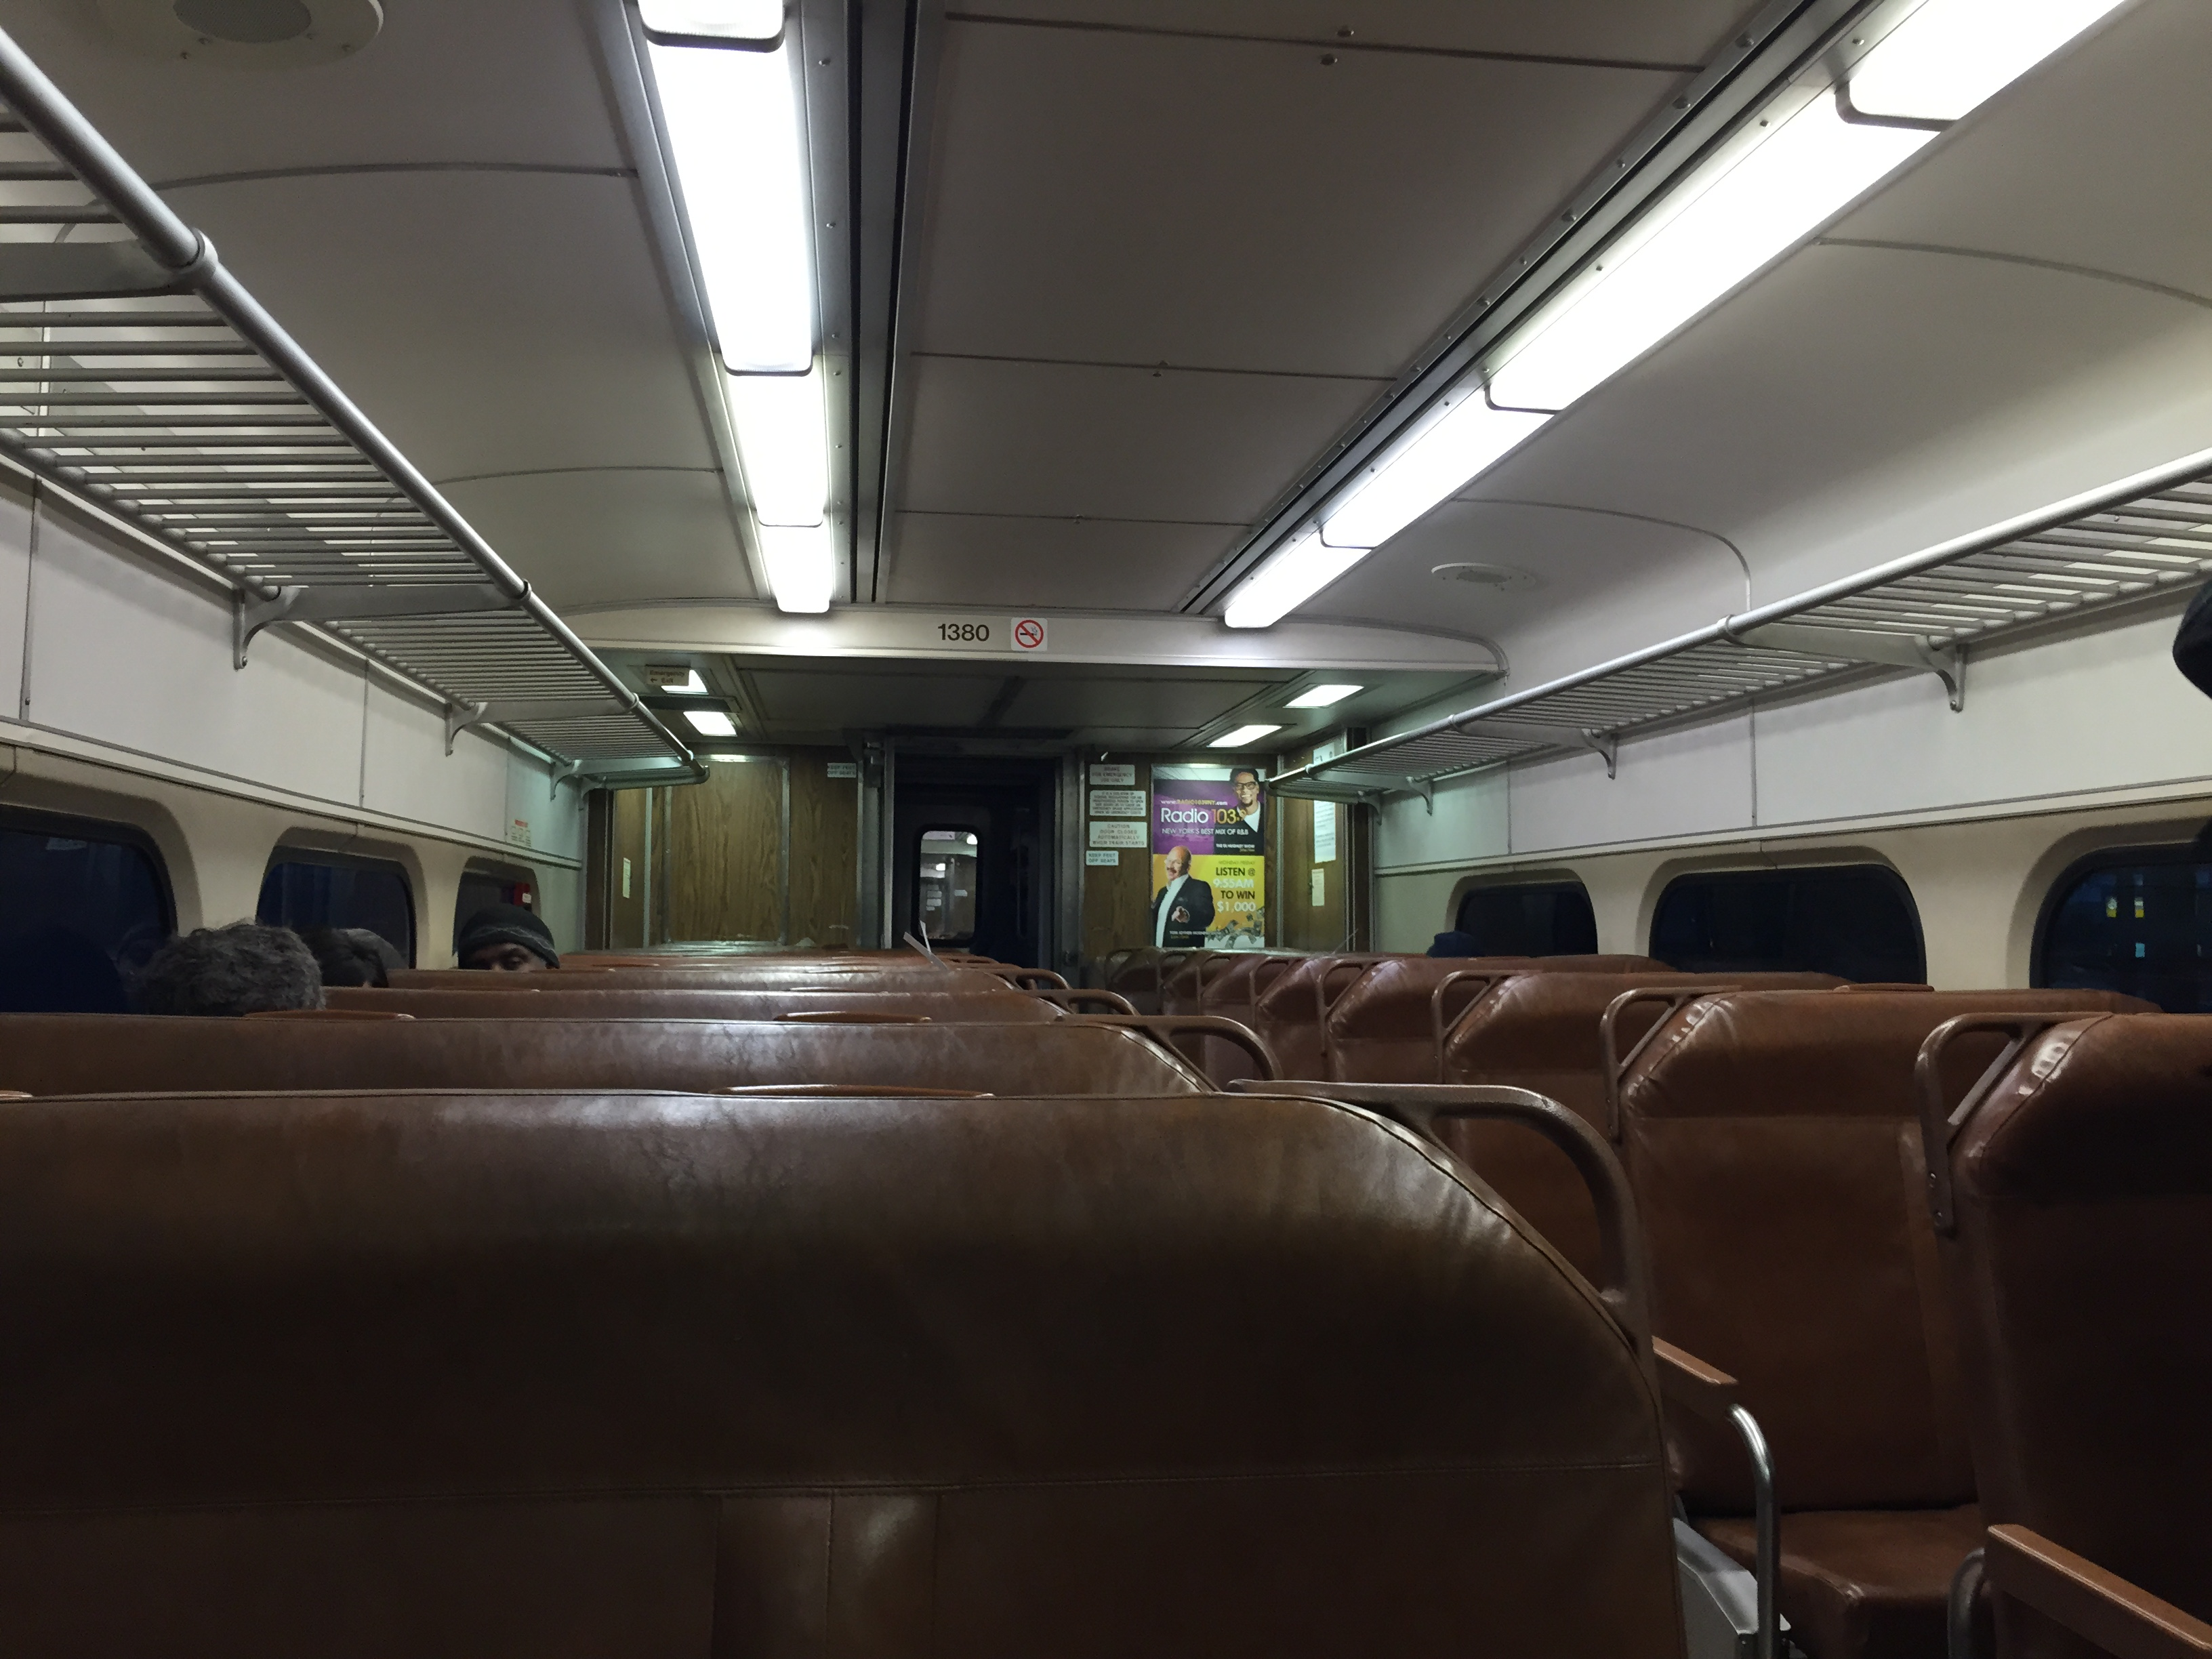 file 2015 04 09 06 50 39 interior of an nj transit rail car on the northeast. Black Bedroom Furniture Sets. Home Design Ideas